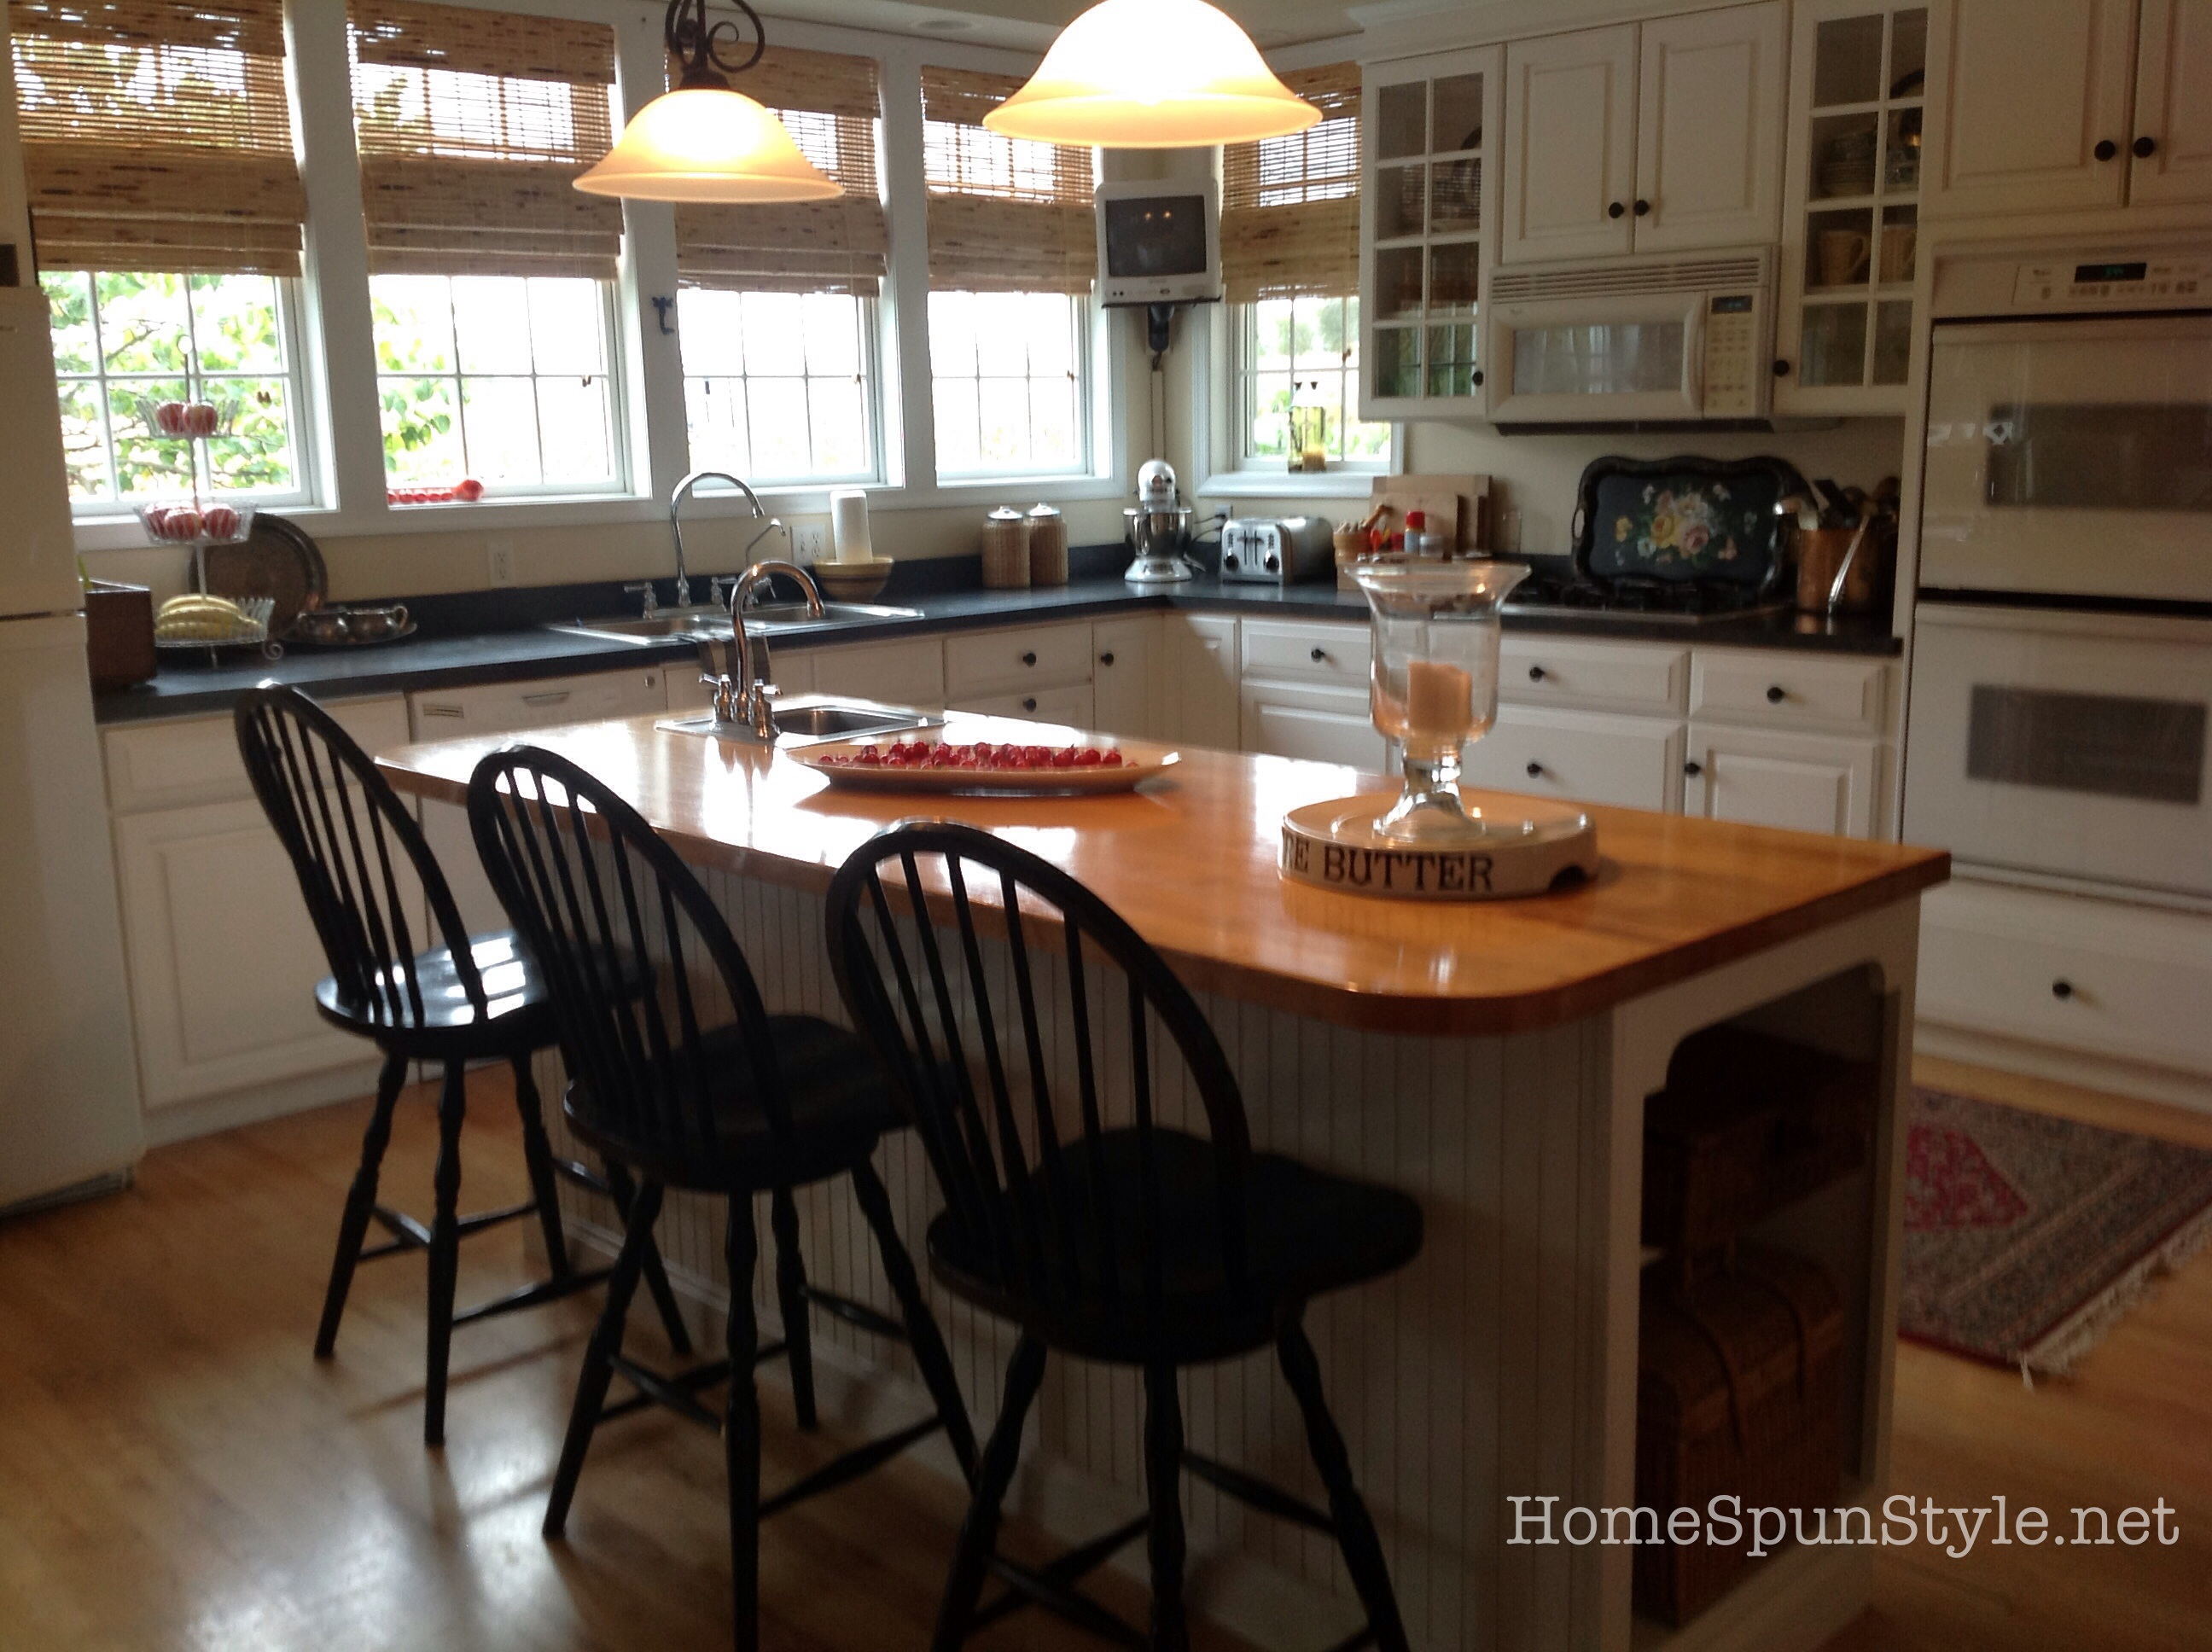 miss mustard seeds milk paint meets my kitchen stools countertop stools kitchen But 12 years and 3 kids later my stools were showing a lot of wear And in my new home with the base cabinets painted black I felt some contrast in color